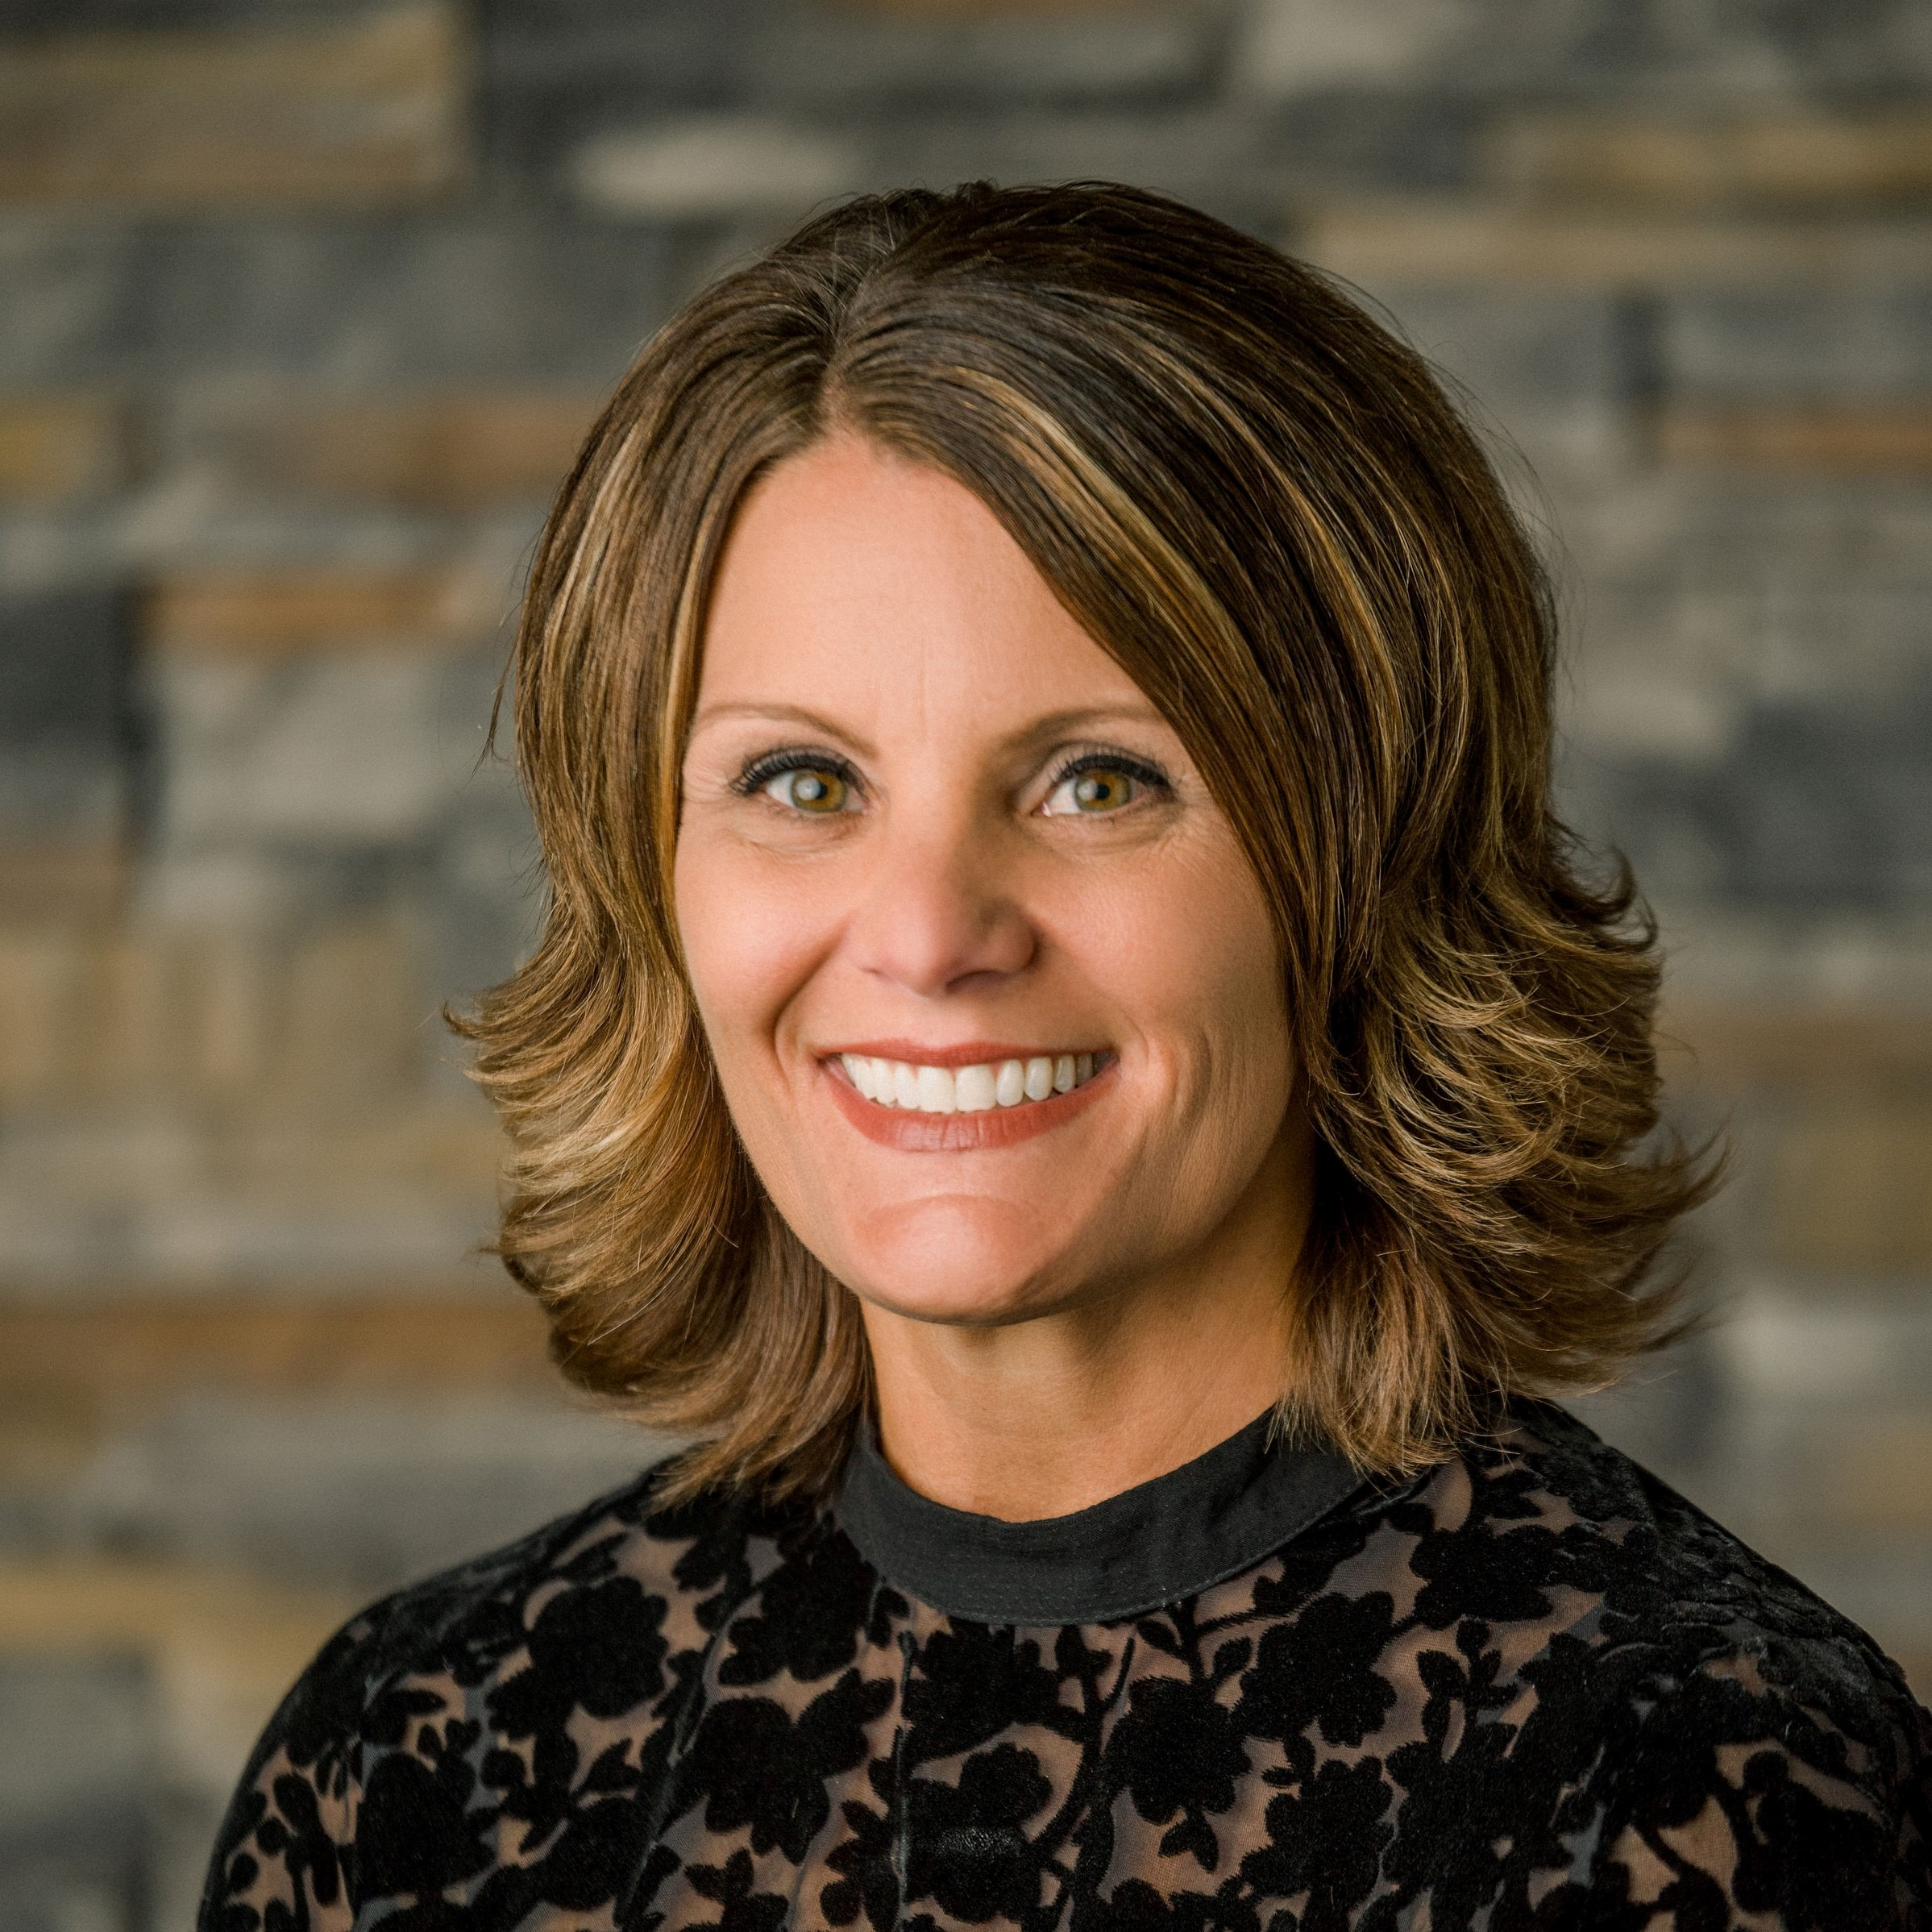 Michelle M. of Orthodontic Specialty Services